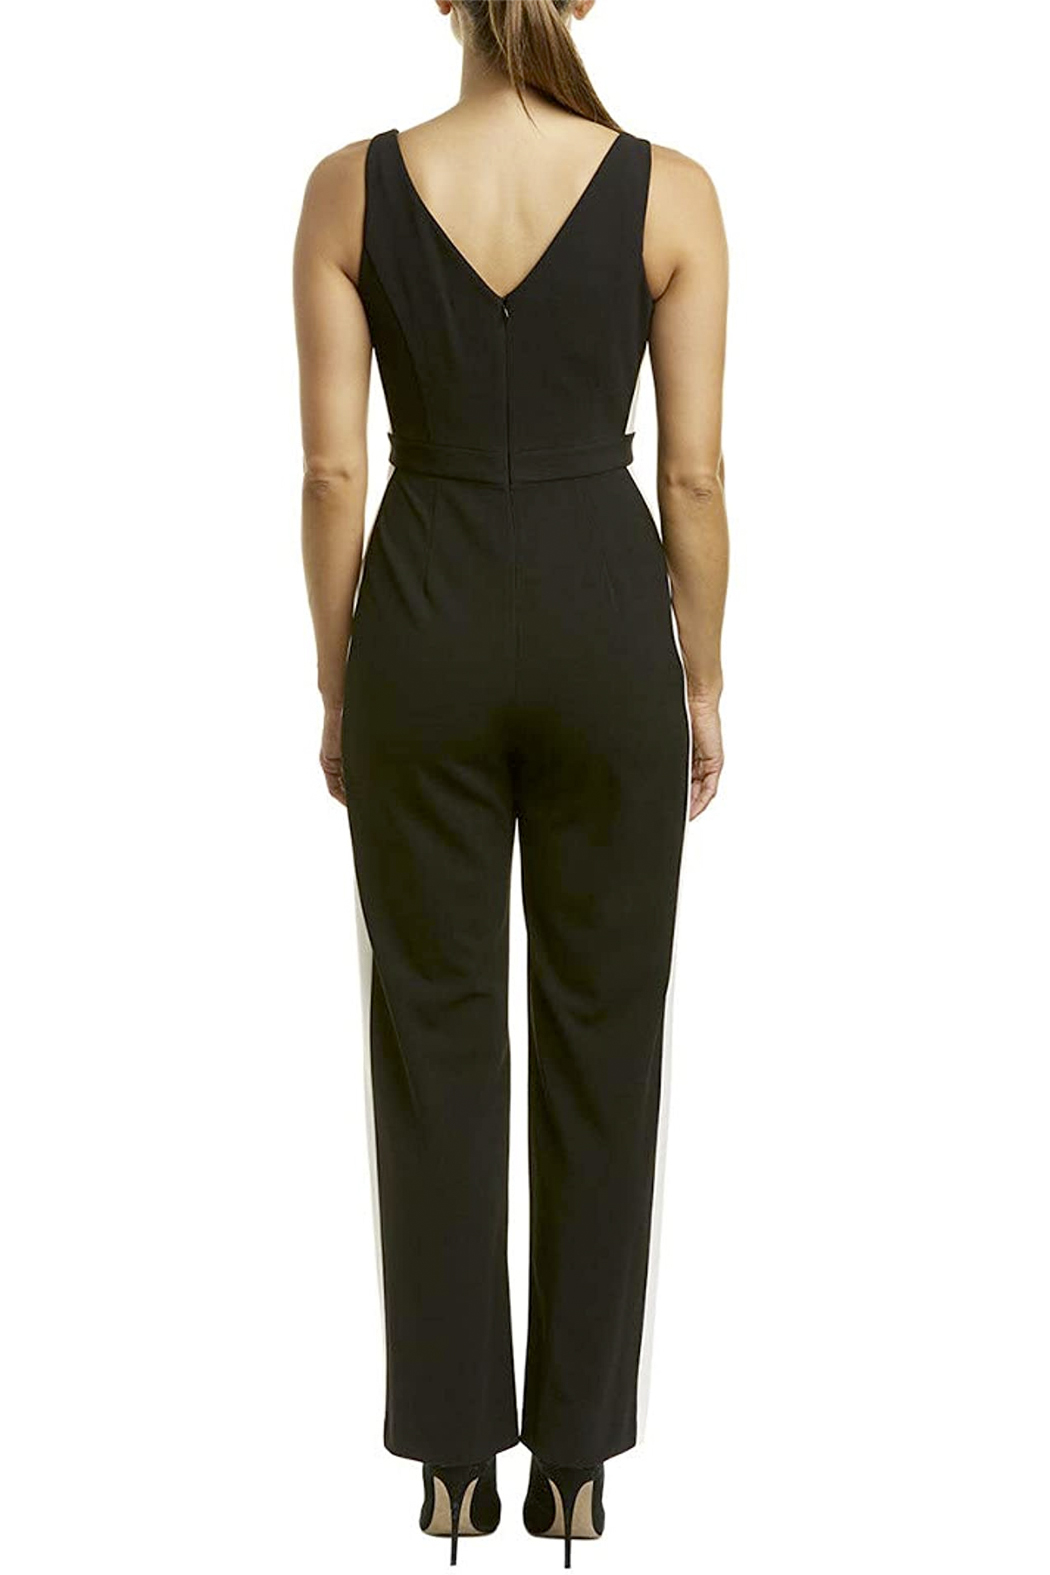 Donna Morgan Jumpsuit with White Side Stripes - Back Cropped Image